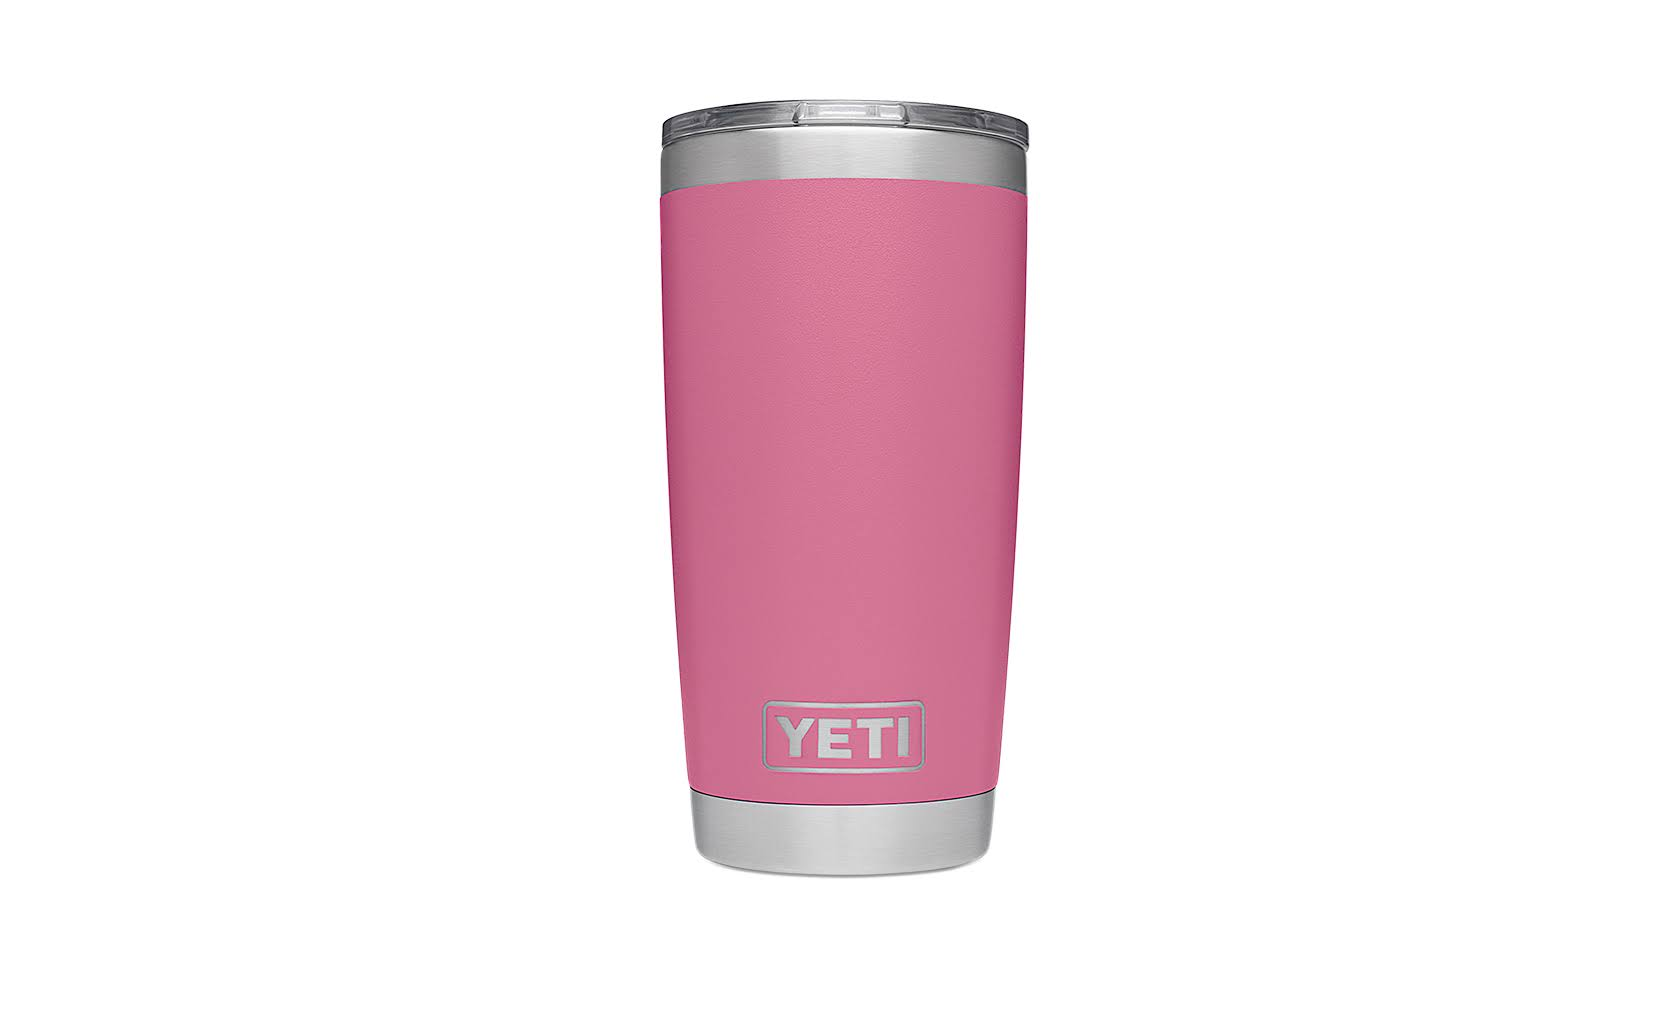 YETI Rambler Stainless Steel Vacuum Insulated Tumbler with MagSlider Lid, Harbor Pink, 20 oz